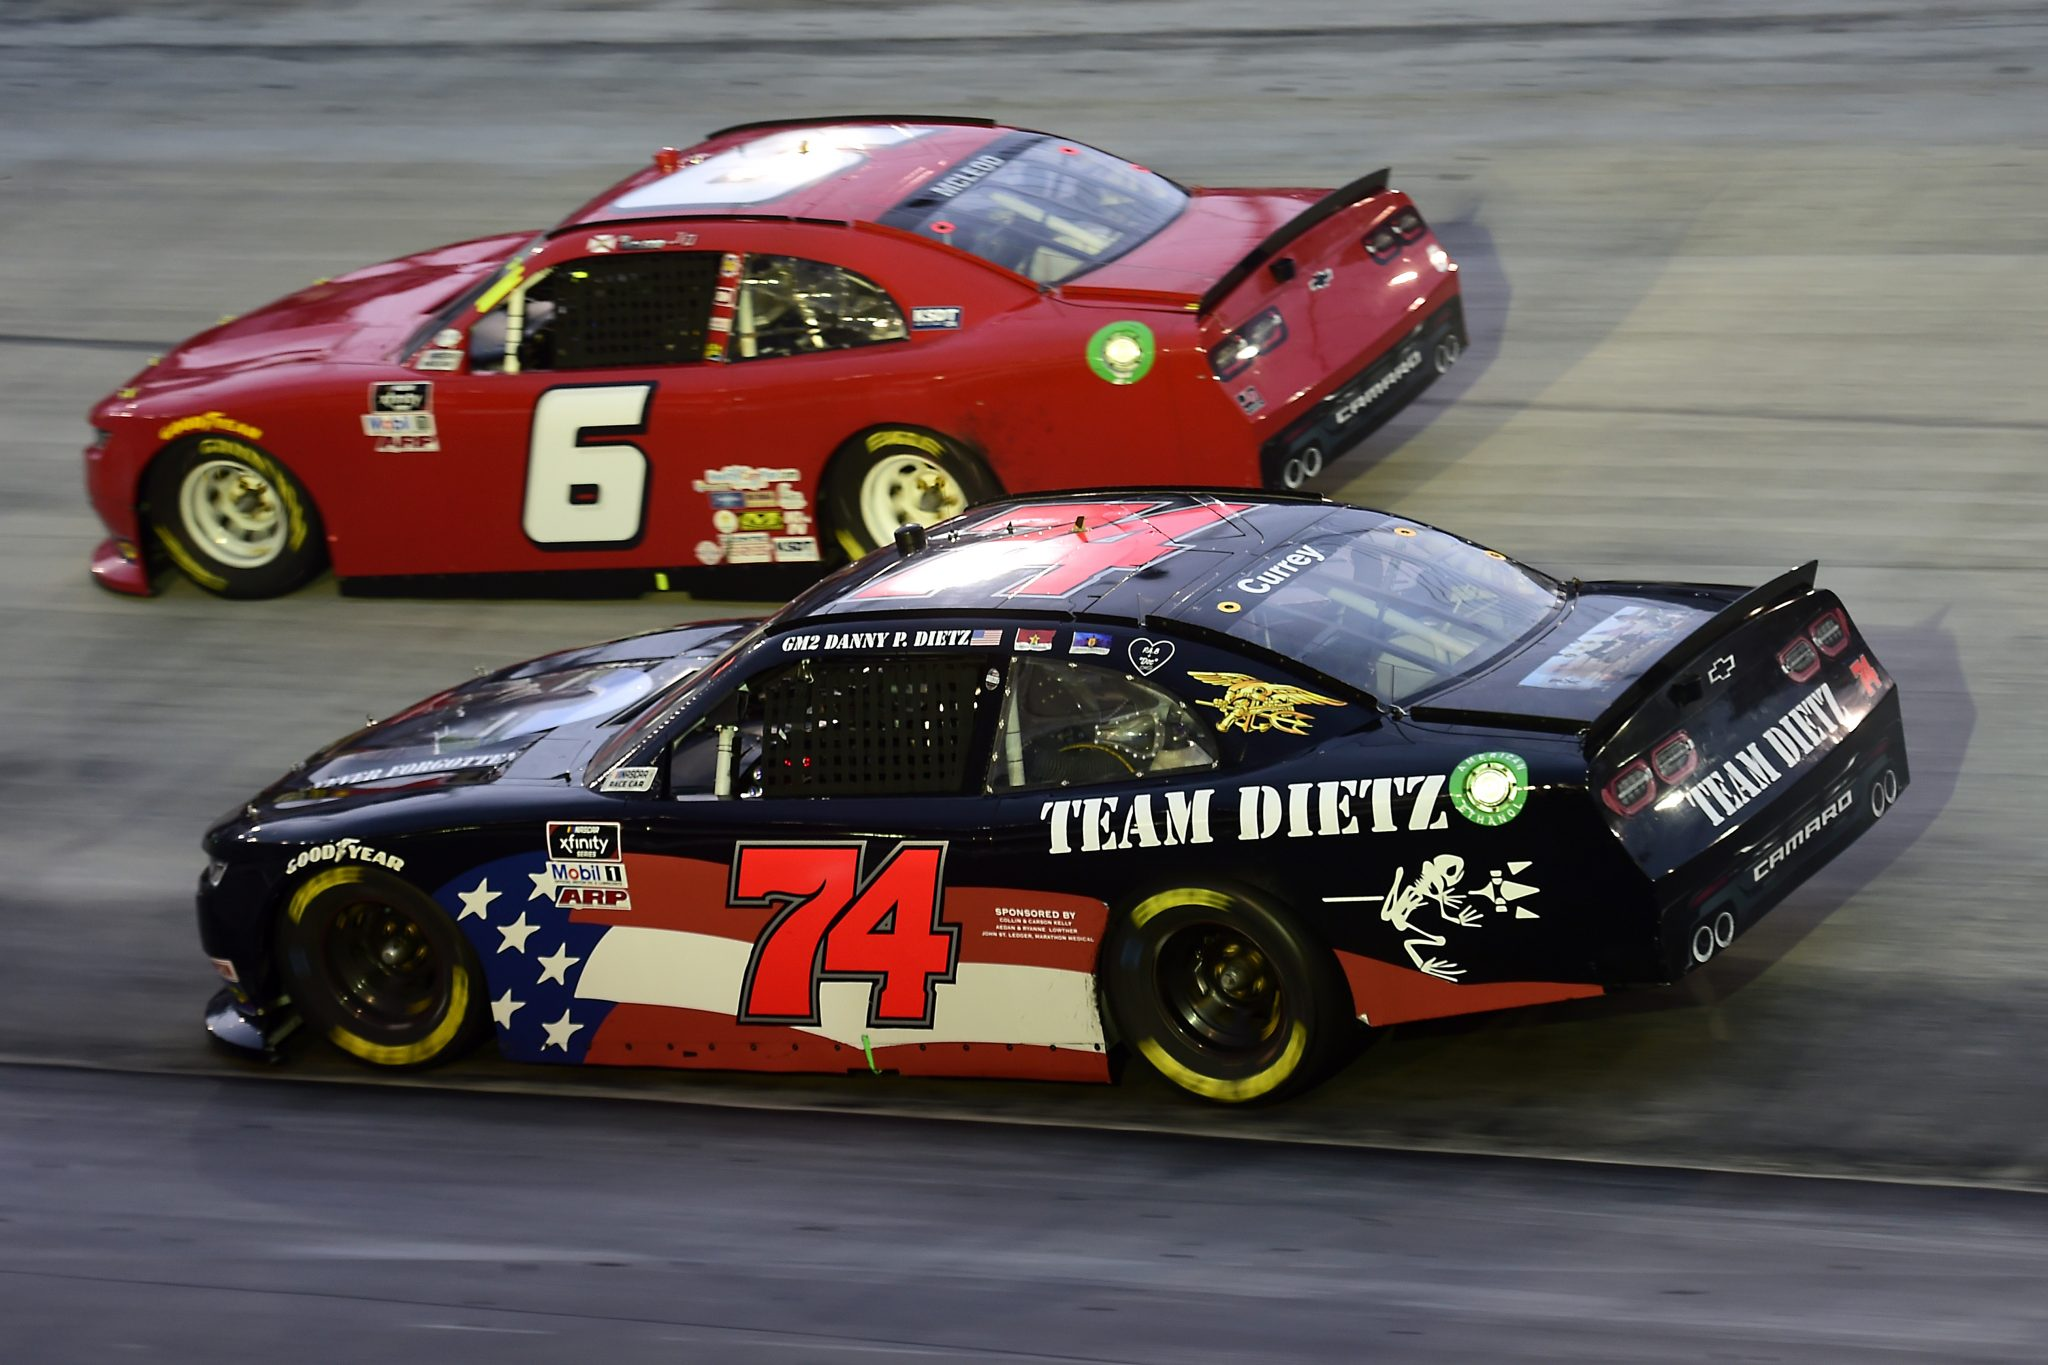 BRISTOL, TENNESSEE - SEPTEMBER 18: Bayley Currey, driver of the #74 Team Dietz Chevrolet, and BJ McLeod, driver of the #6 JD Motorsports Chevrolet, race during the NASCAR Xfinity Series Food City 300 at Bristol Motor Speedway on September 18, 2020 in Bristol, Tennessee. (Photo by Jared C. Tilton/Getty Images) | Getty Images